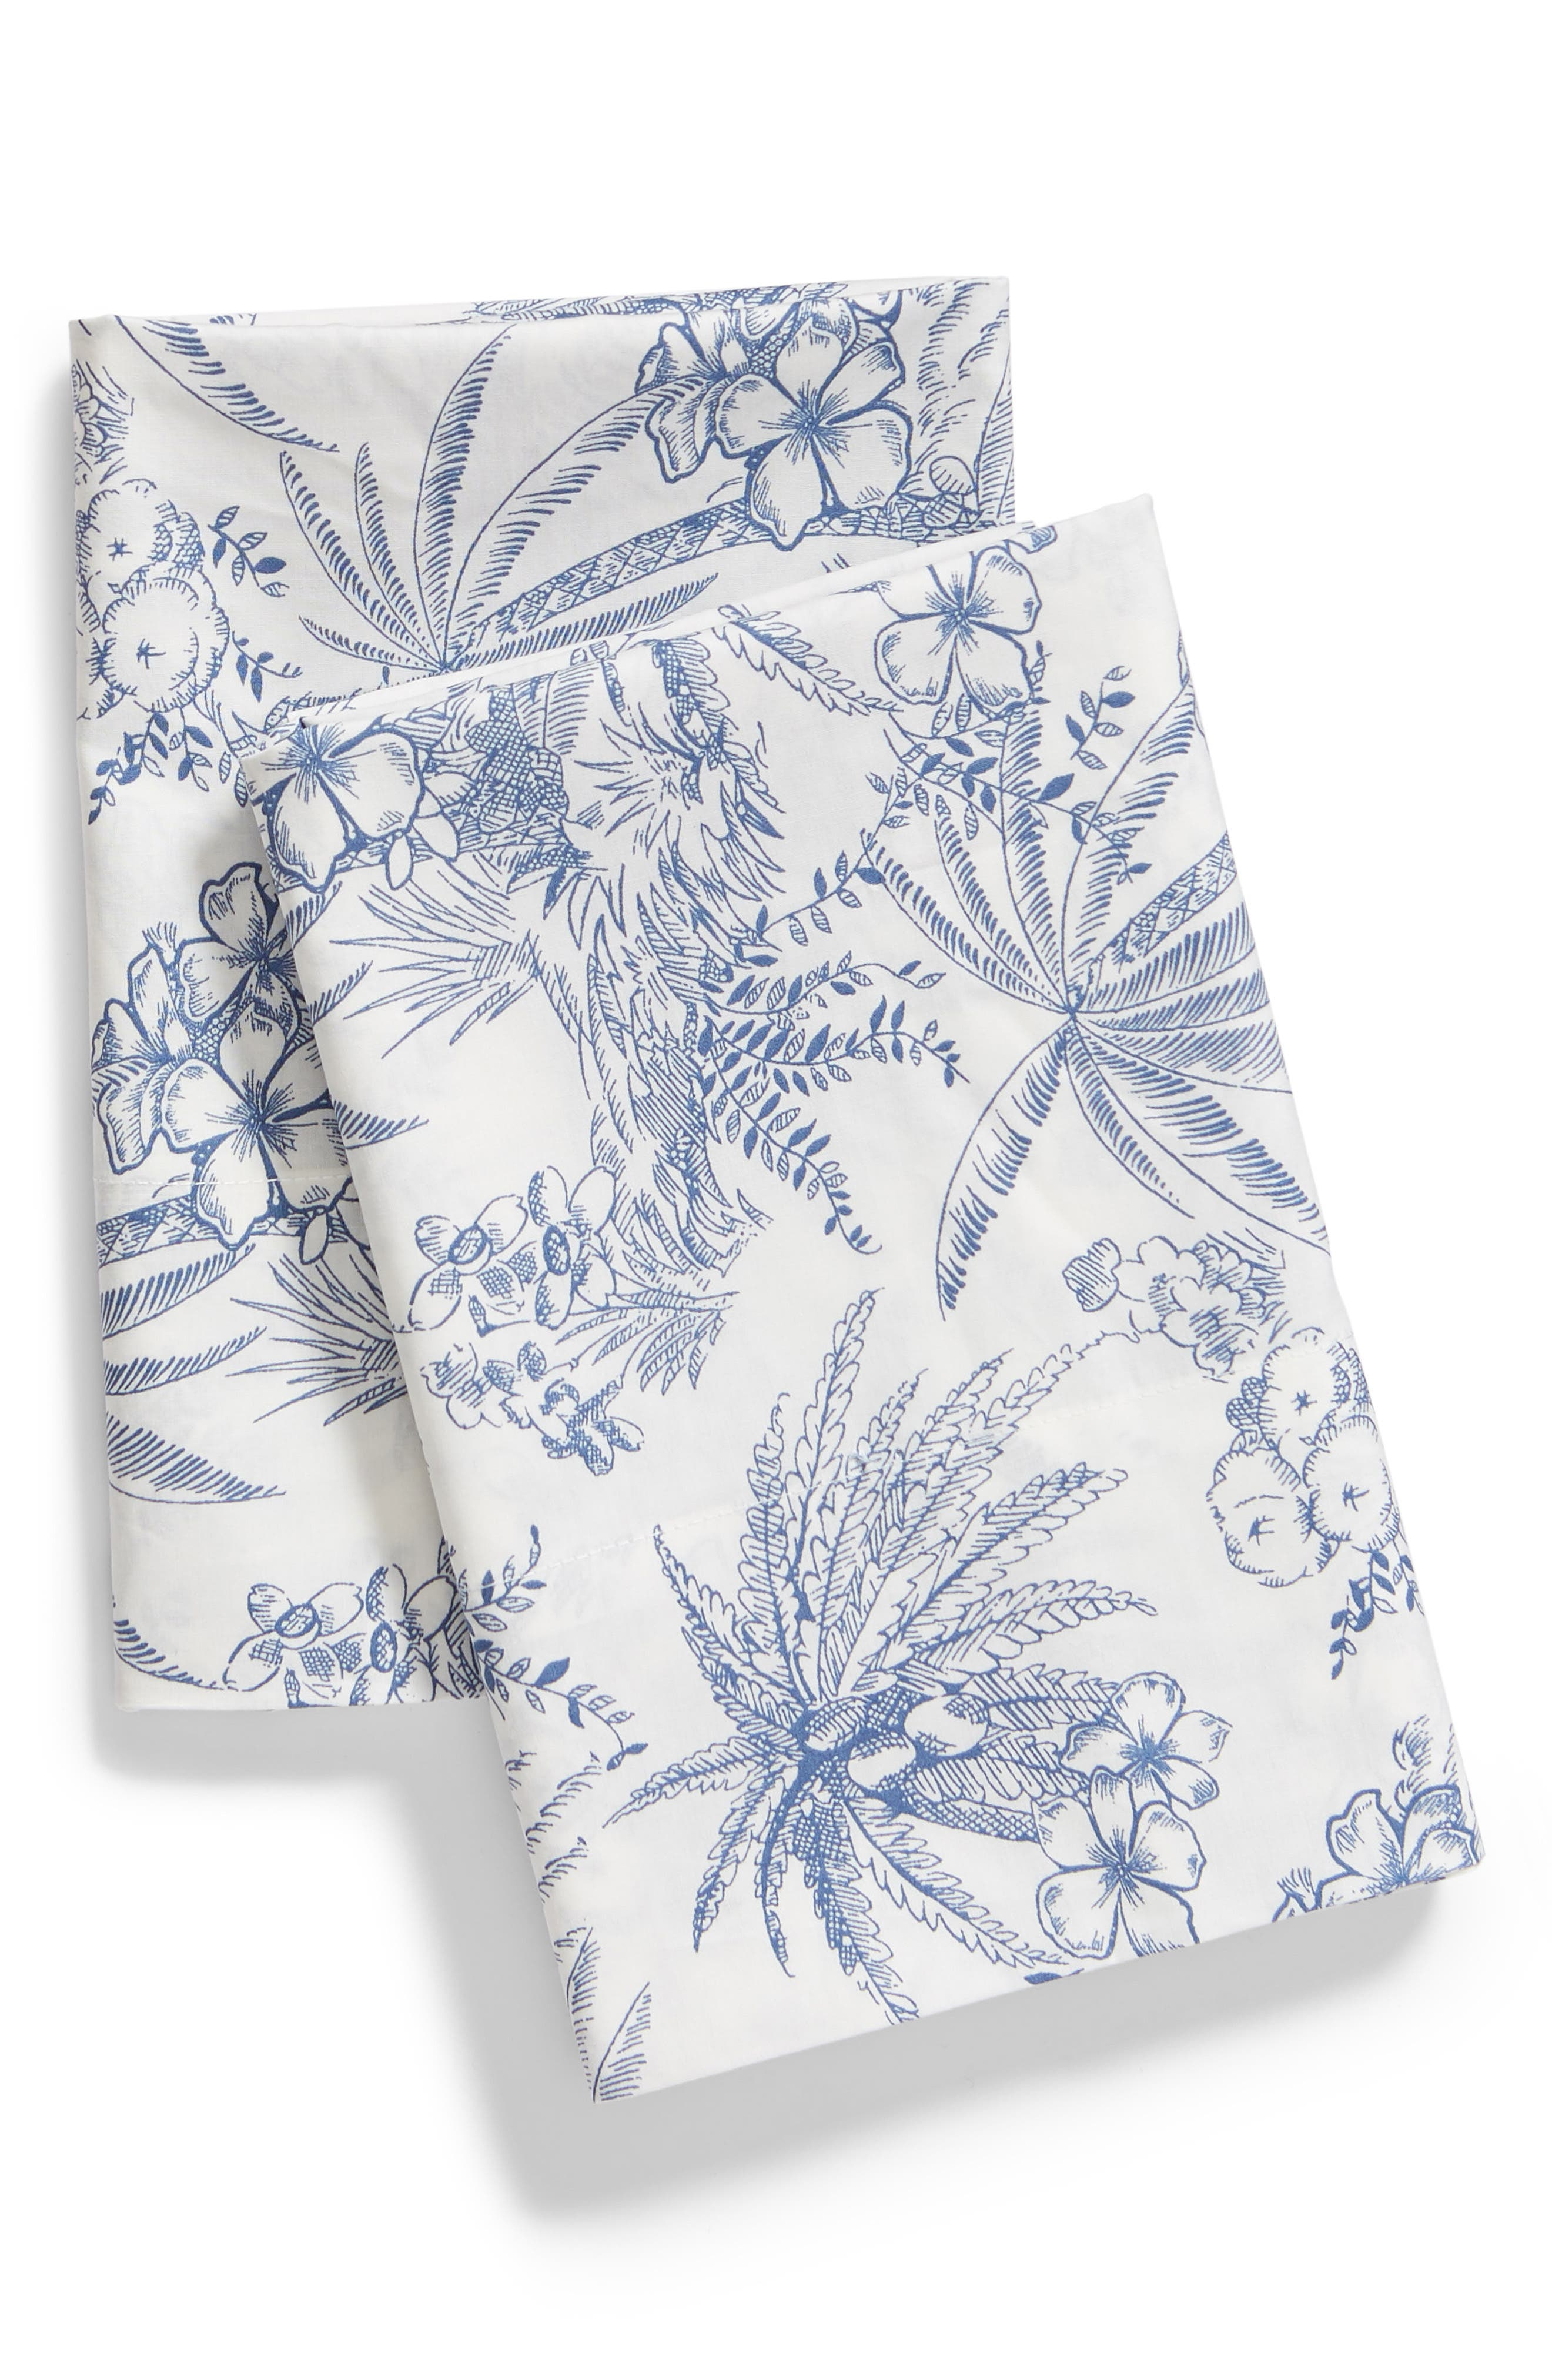 Tommy Bahama 200 Thread Count Pillowcases